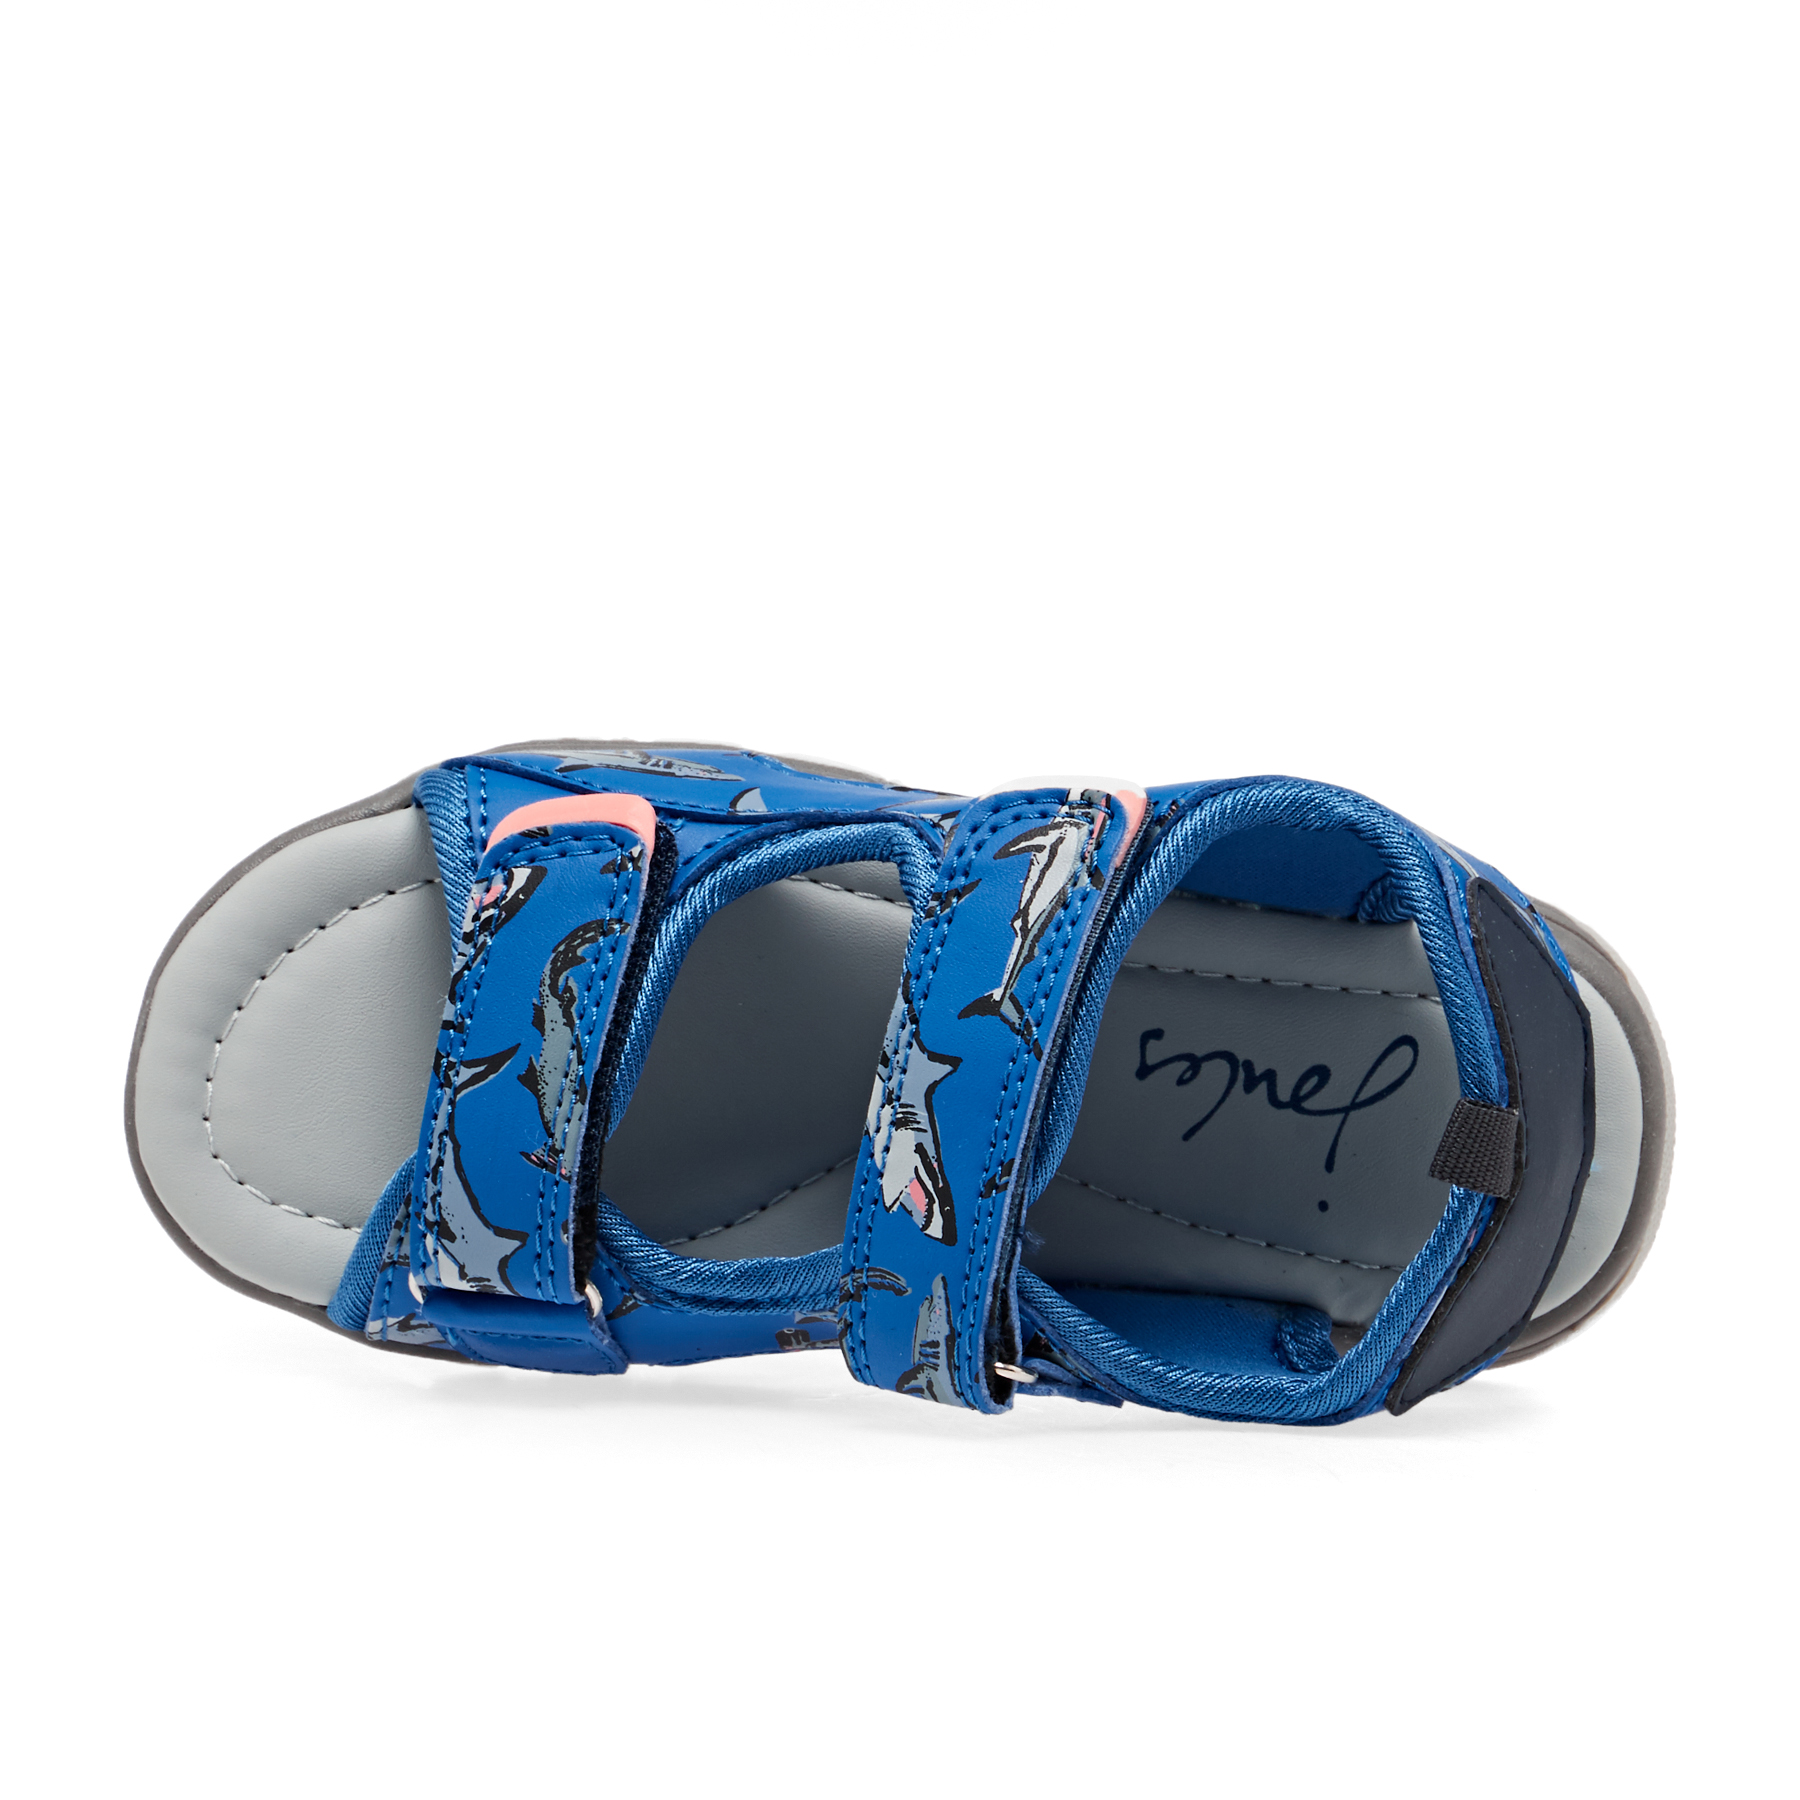 Joules Boys Rockwell Sandals in BLUE SHARKS